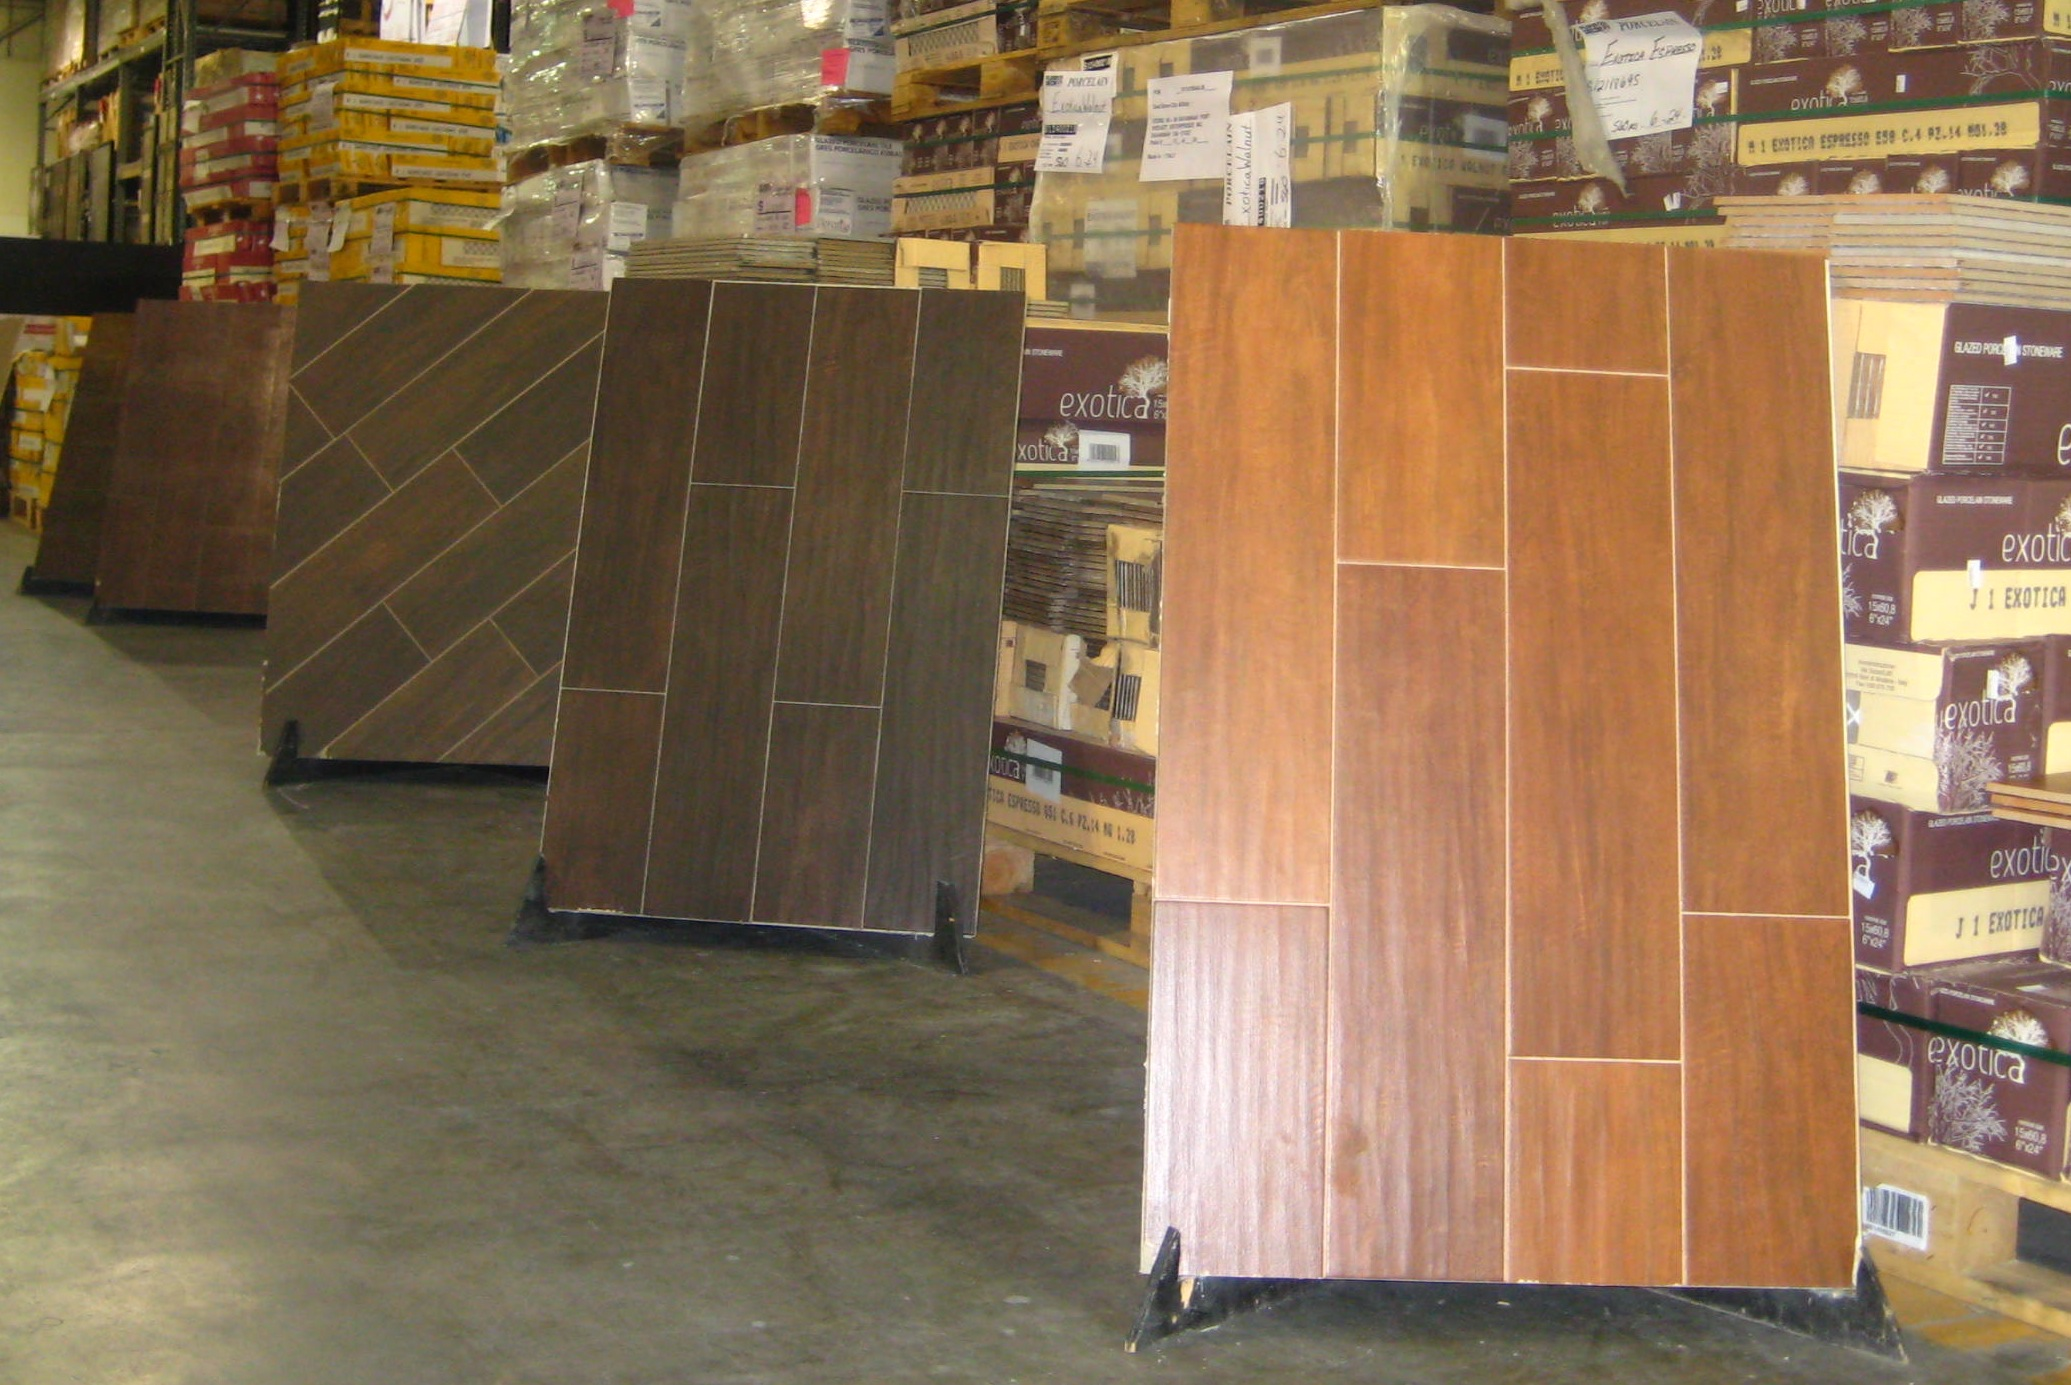 Floor And Decor Carries A Wide Variety Of Colors In The Wood Tile